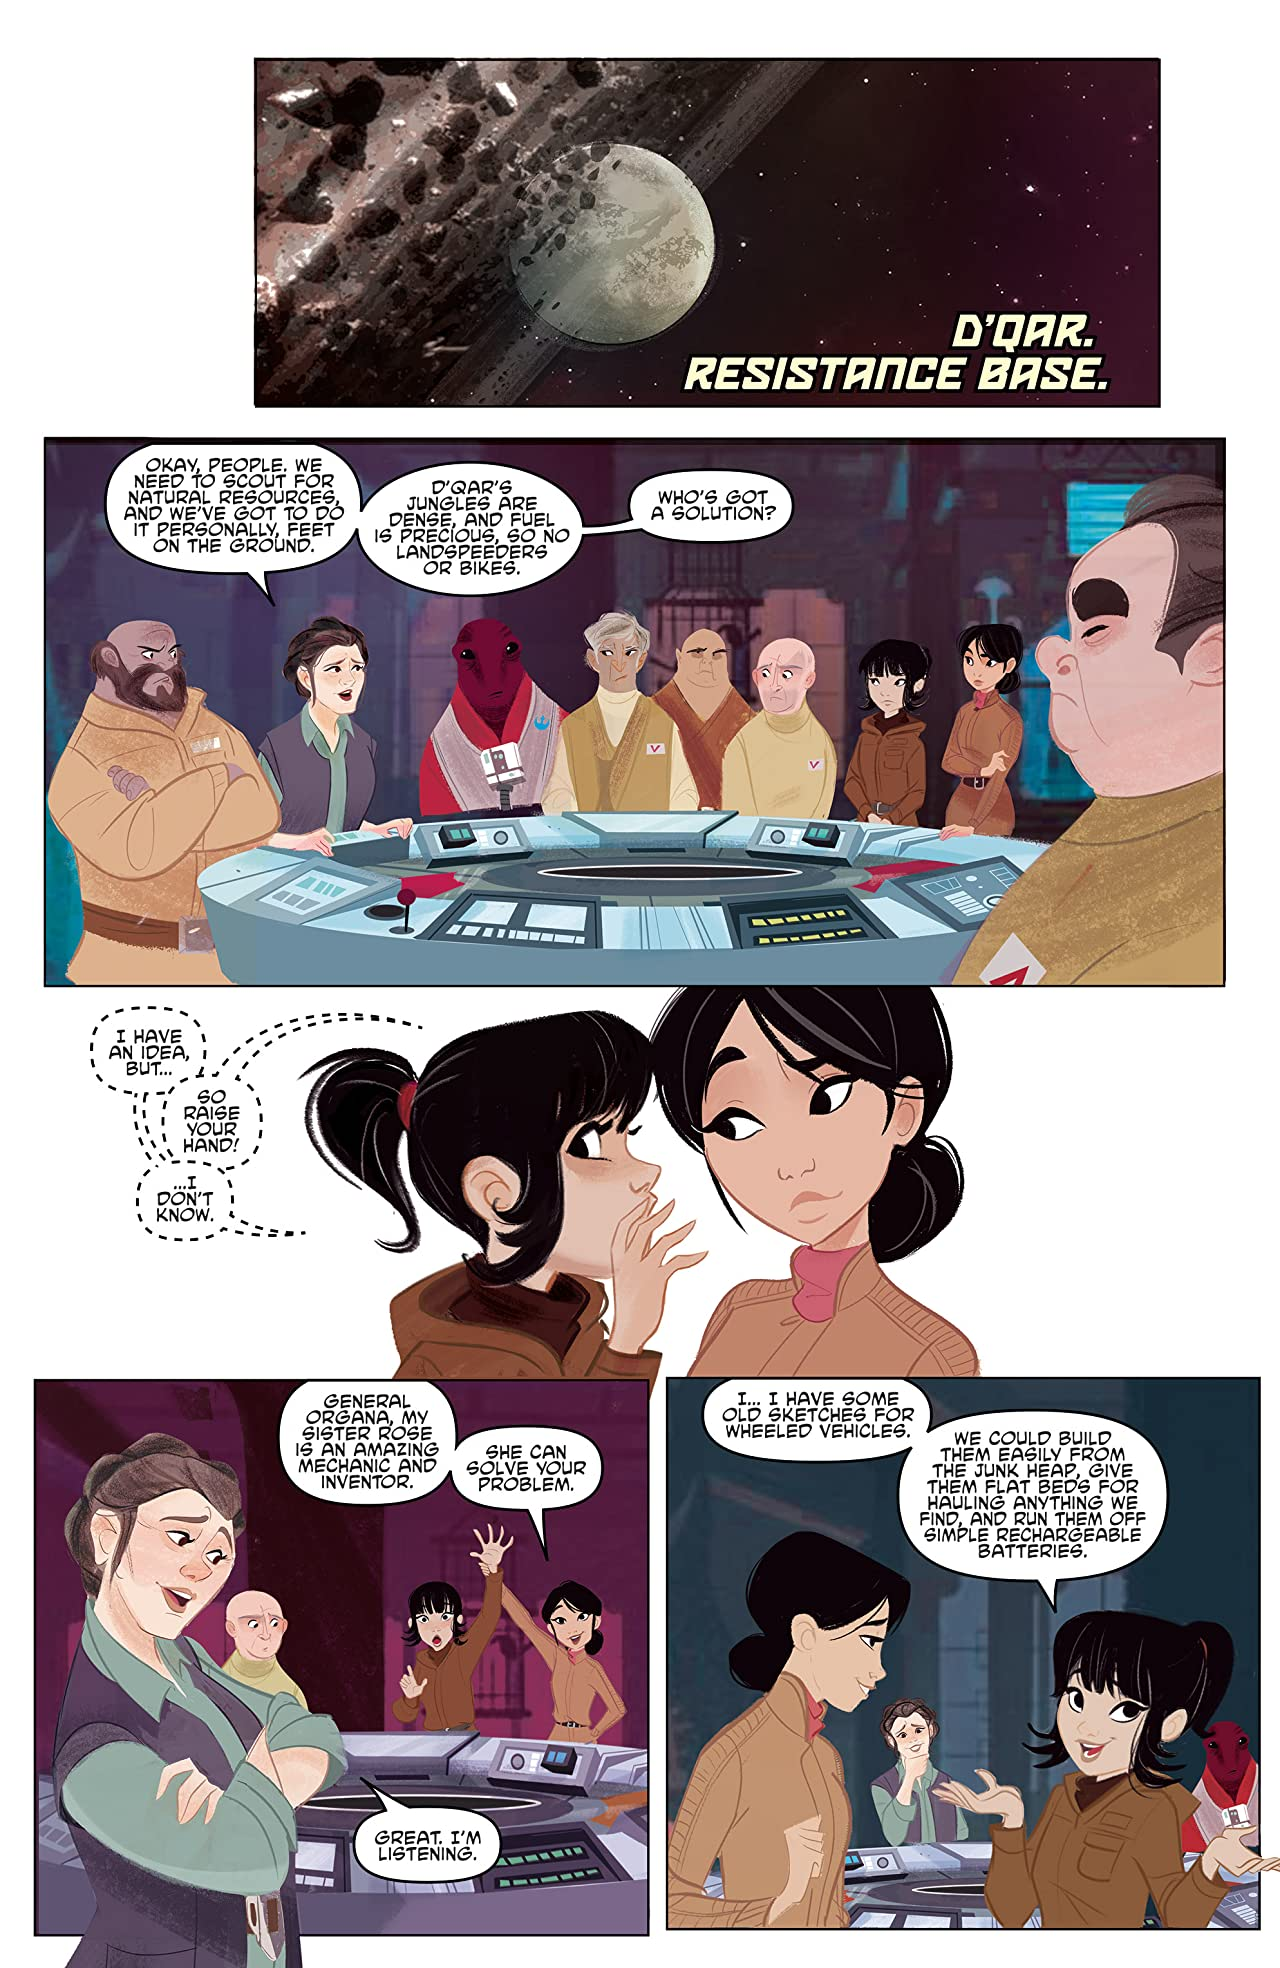 Star Wars Adventures: Forces of Destiny—Rose & Paige